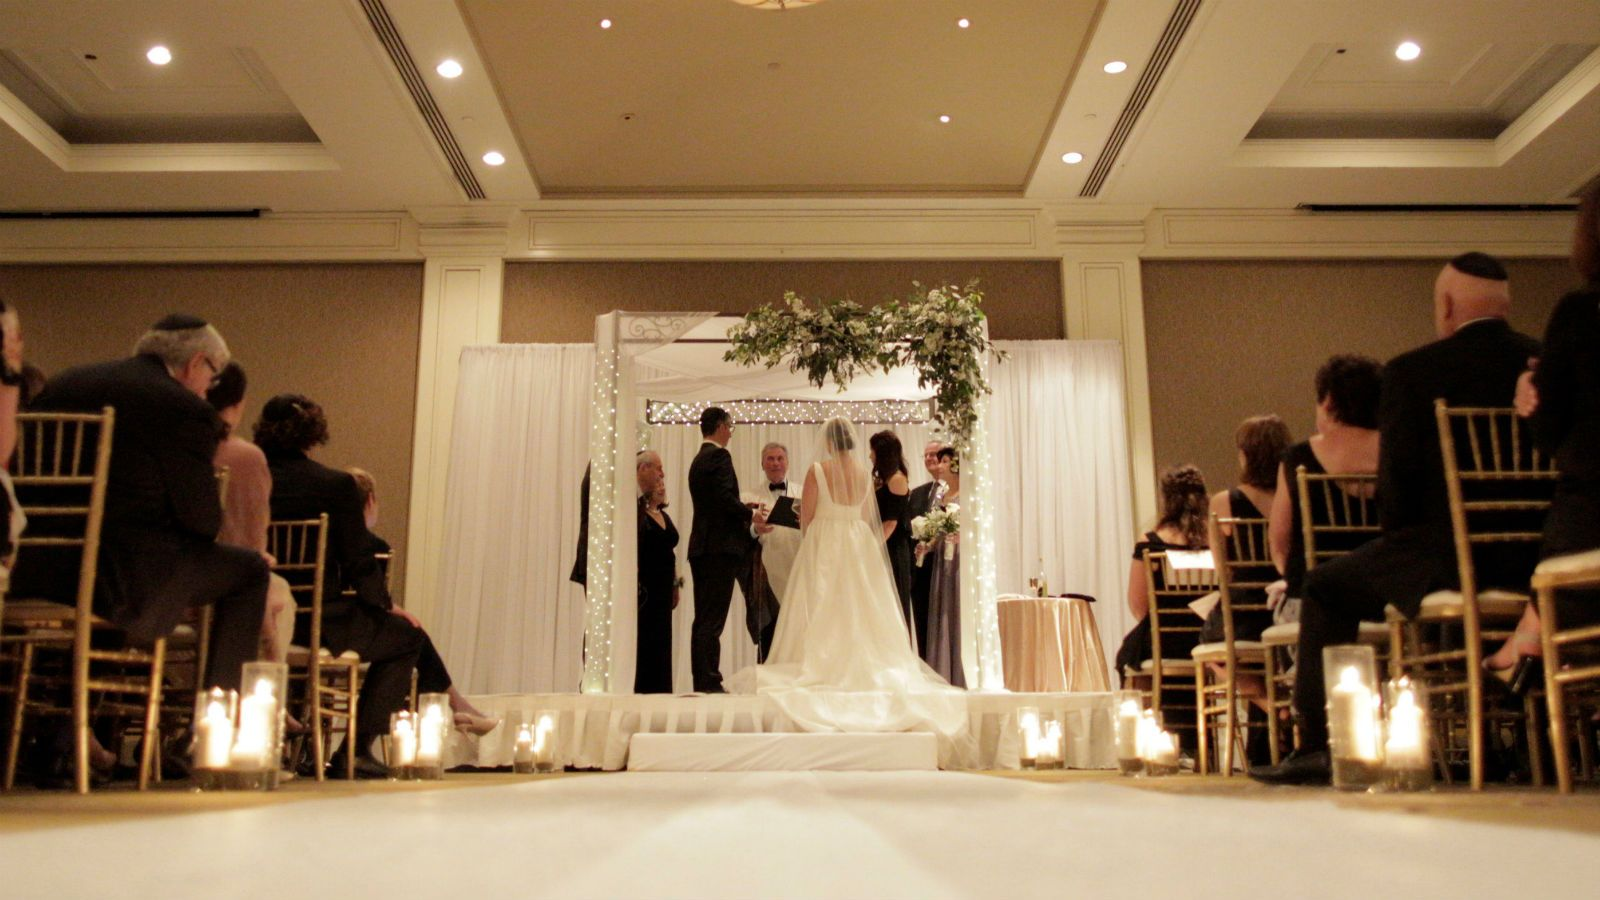 Downtown Calgary Wedding Venues - Alter